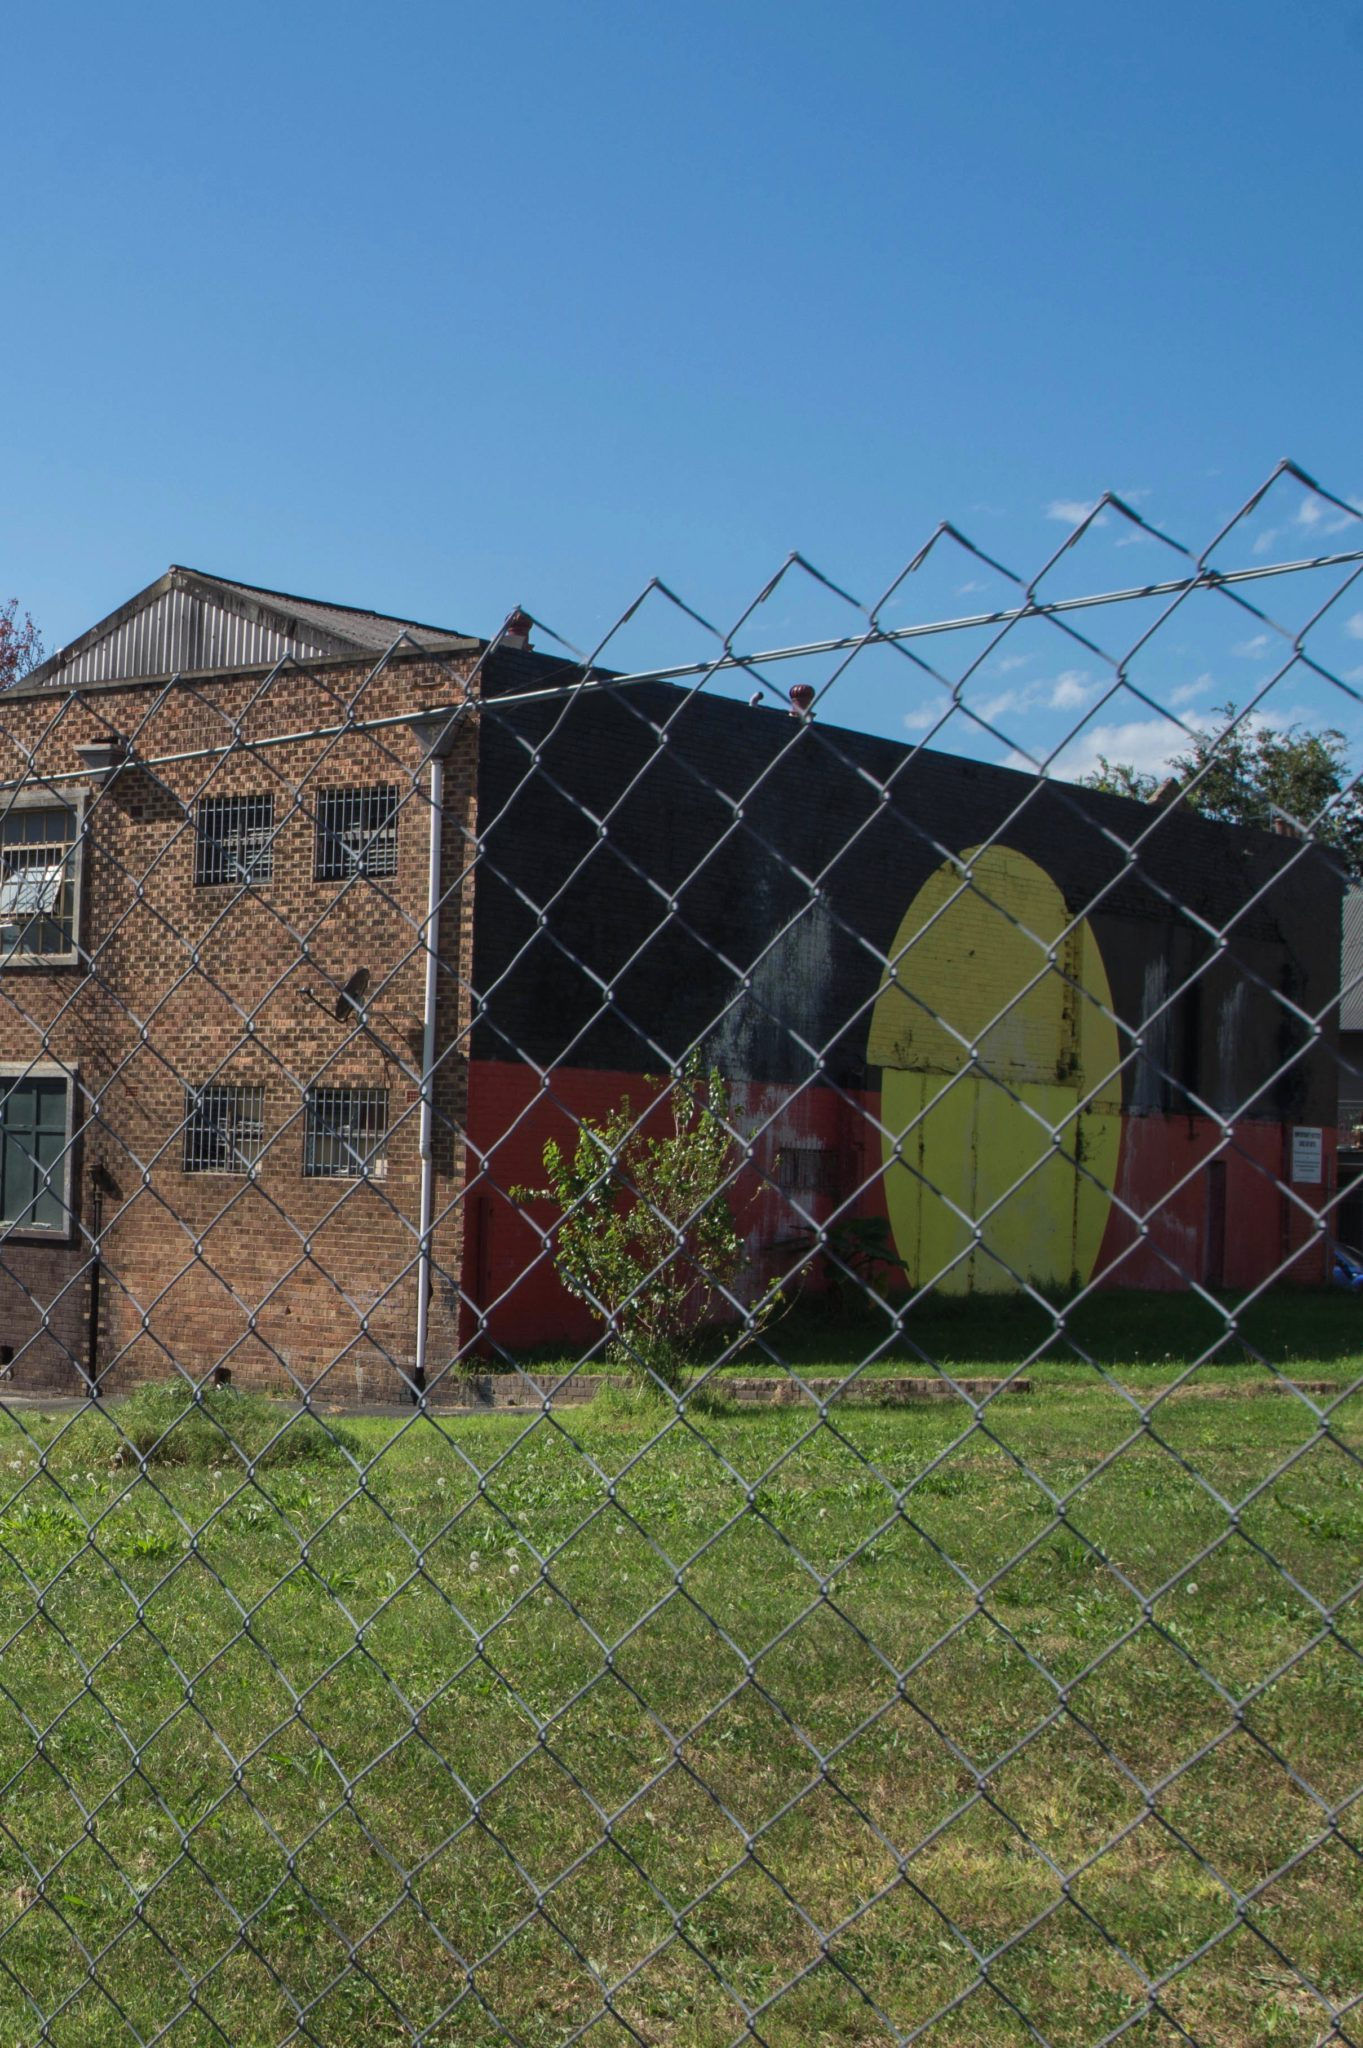 Redfern Sydney: What has once been the meeting point of boxing students, is now an empty square with little fun.